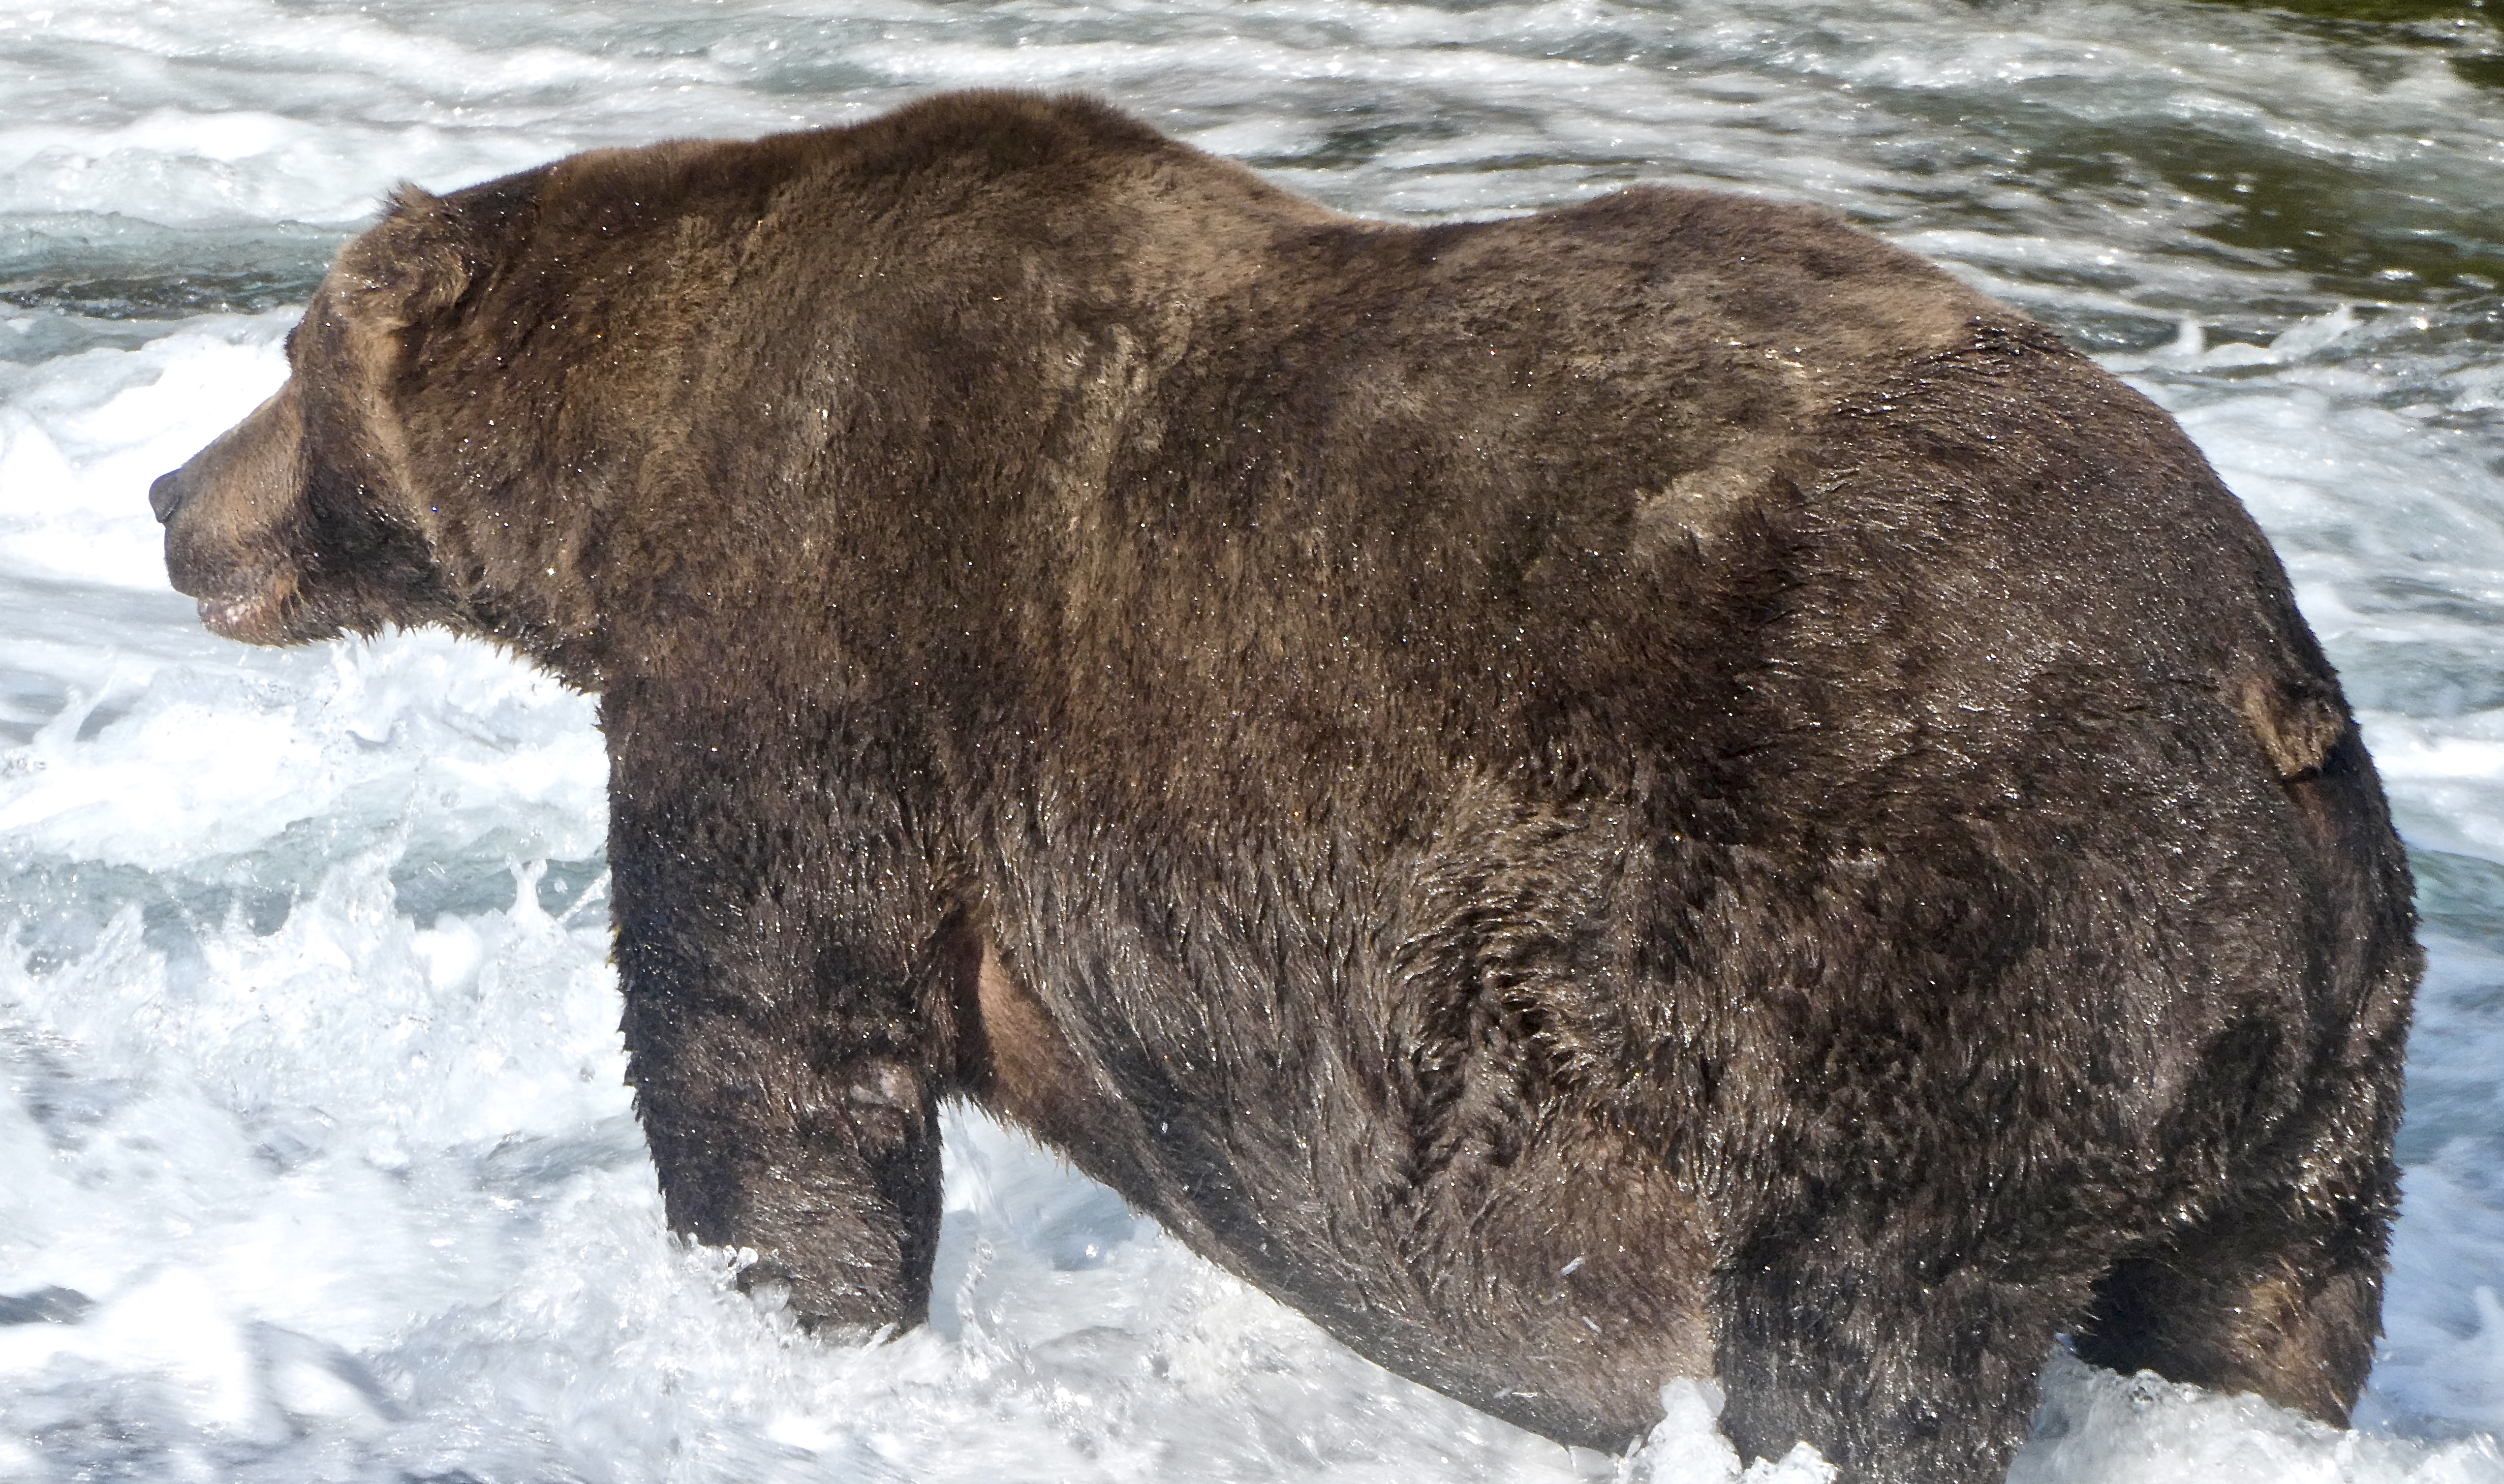 very large brown bear standing in water